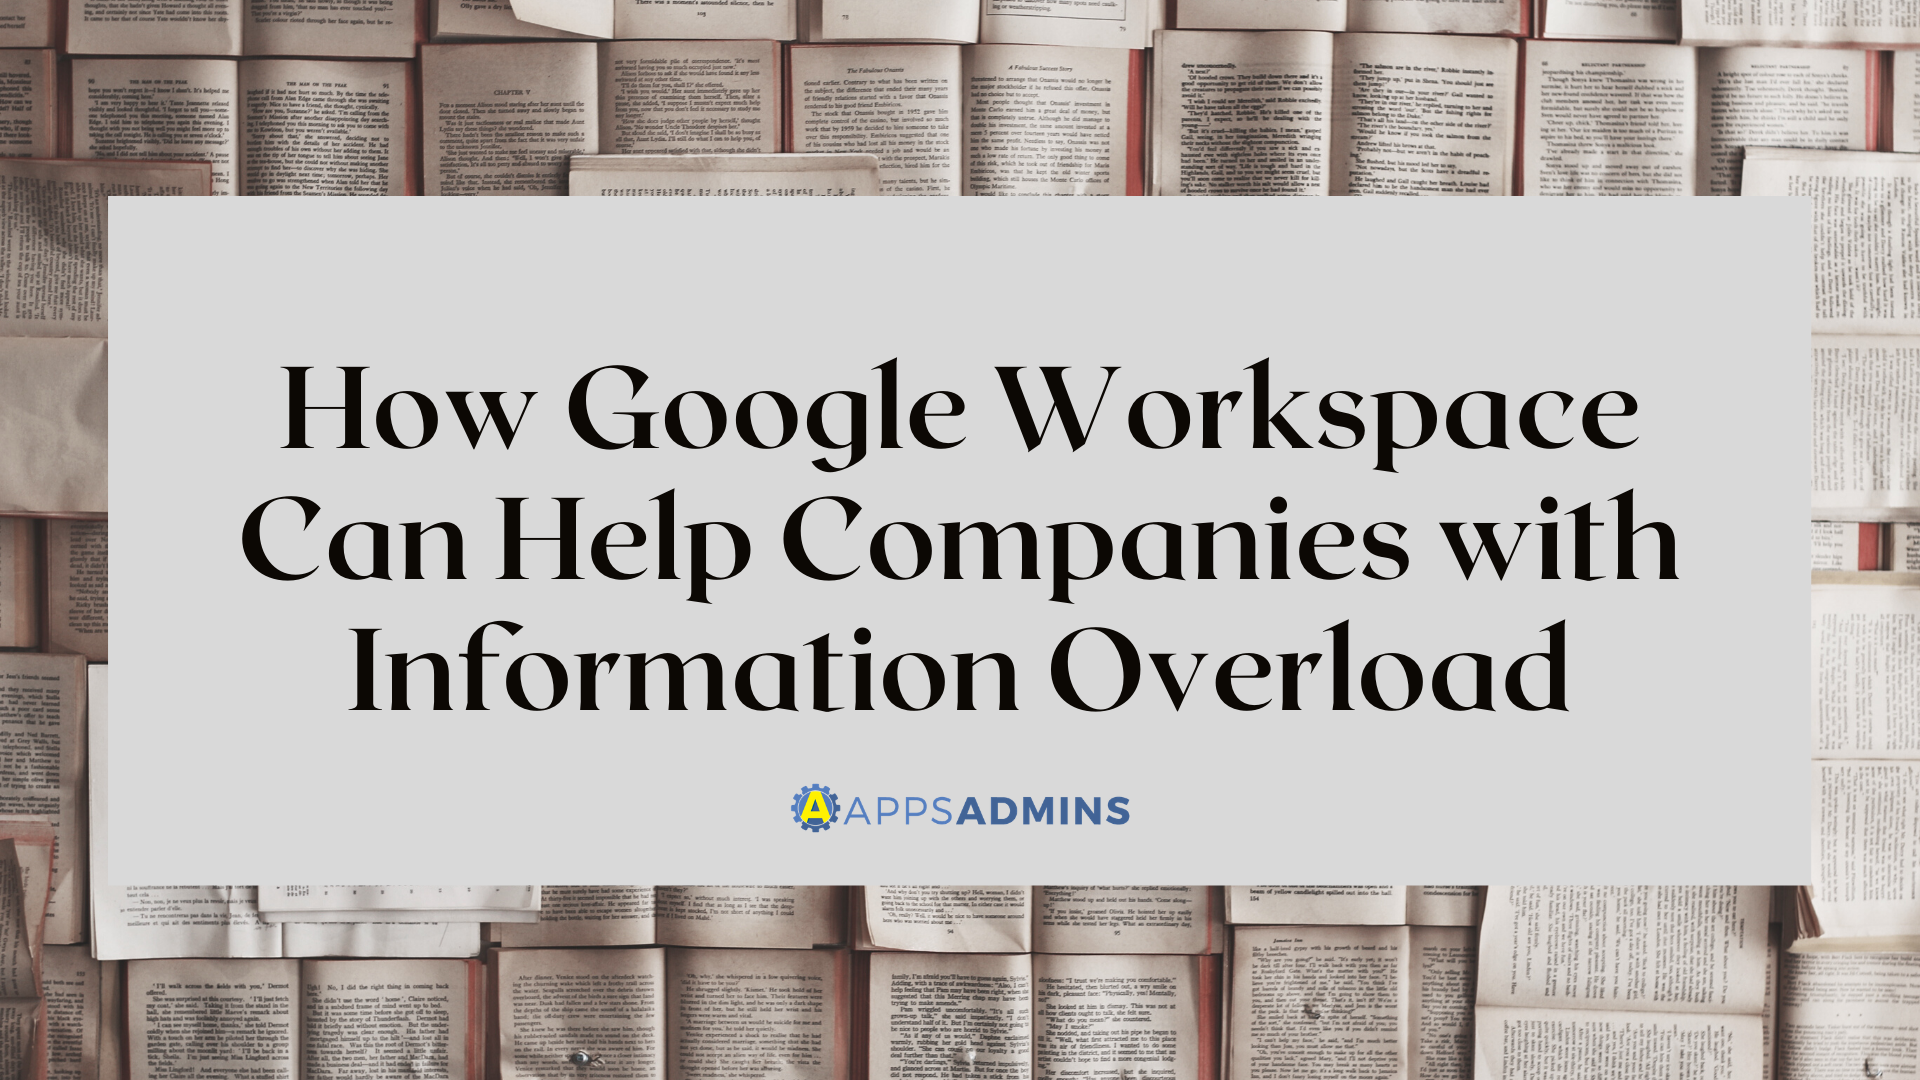 How Google Workspace Can Help Companies with Information Overload